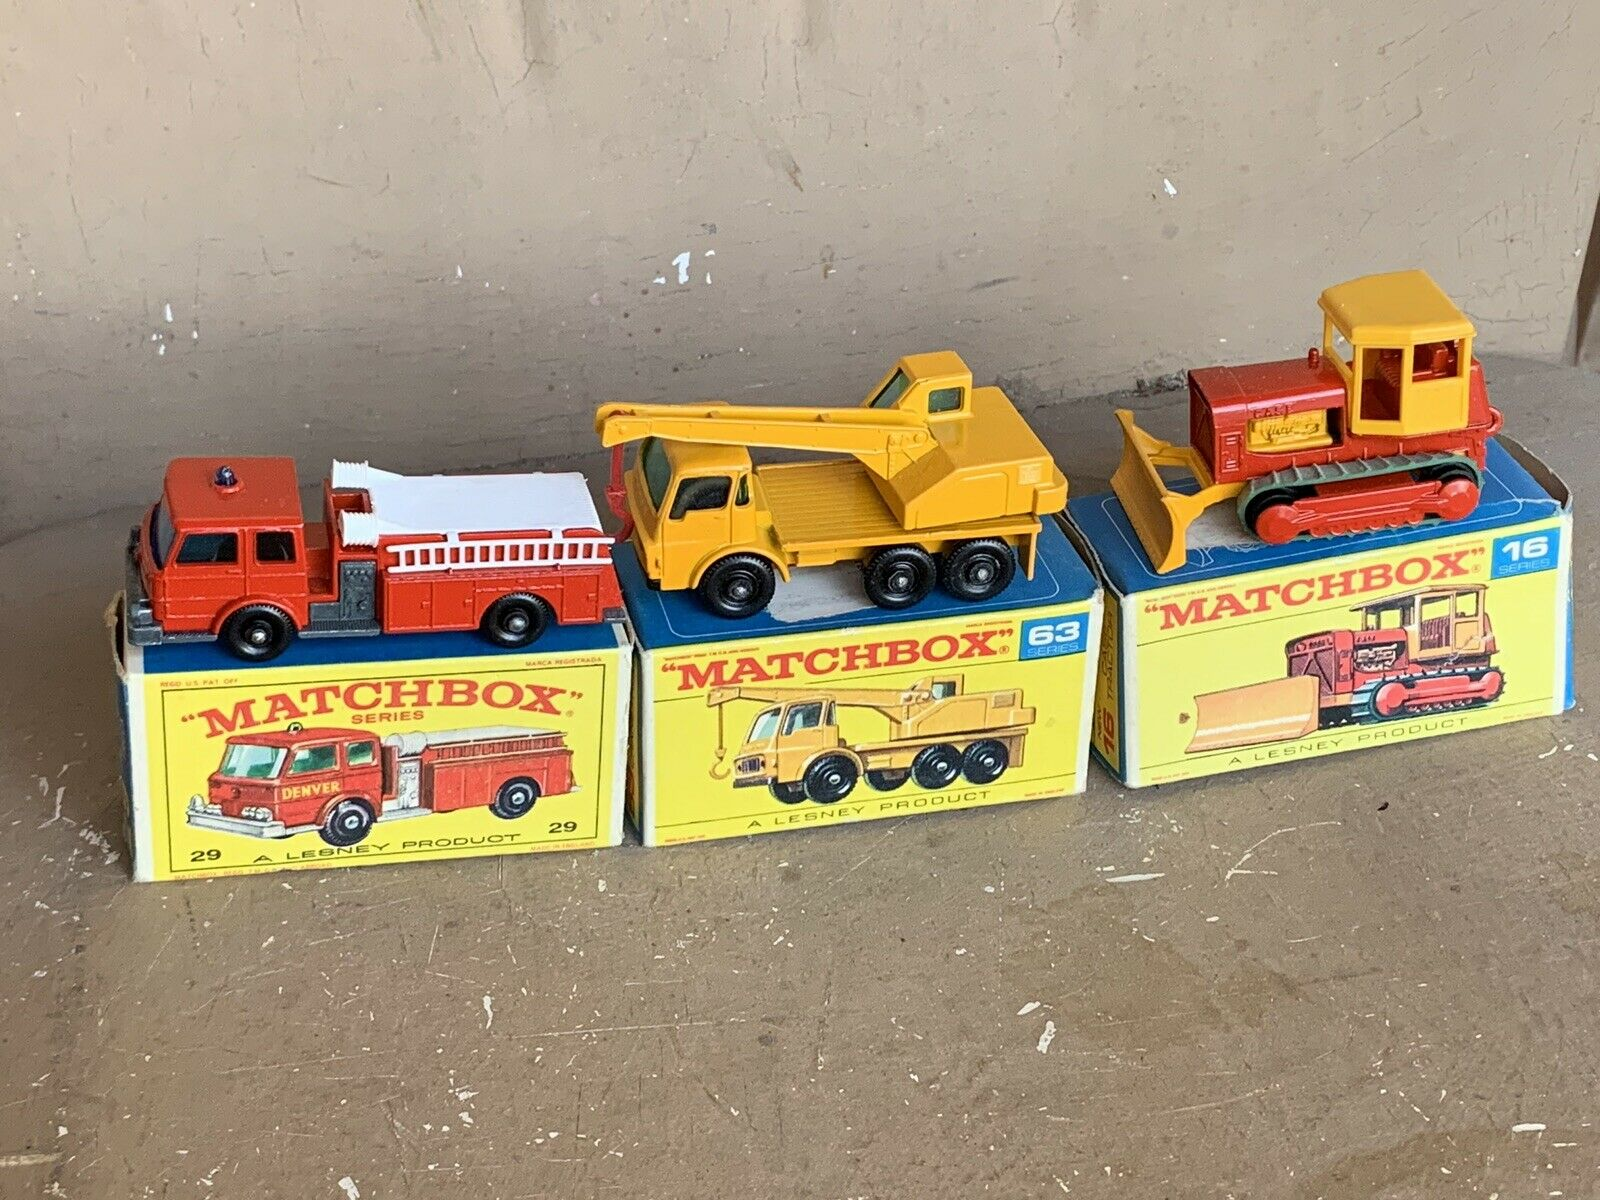 3 LESNEY MATCHBOX Mint In Original Boxes 16-29-63